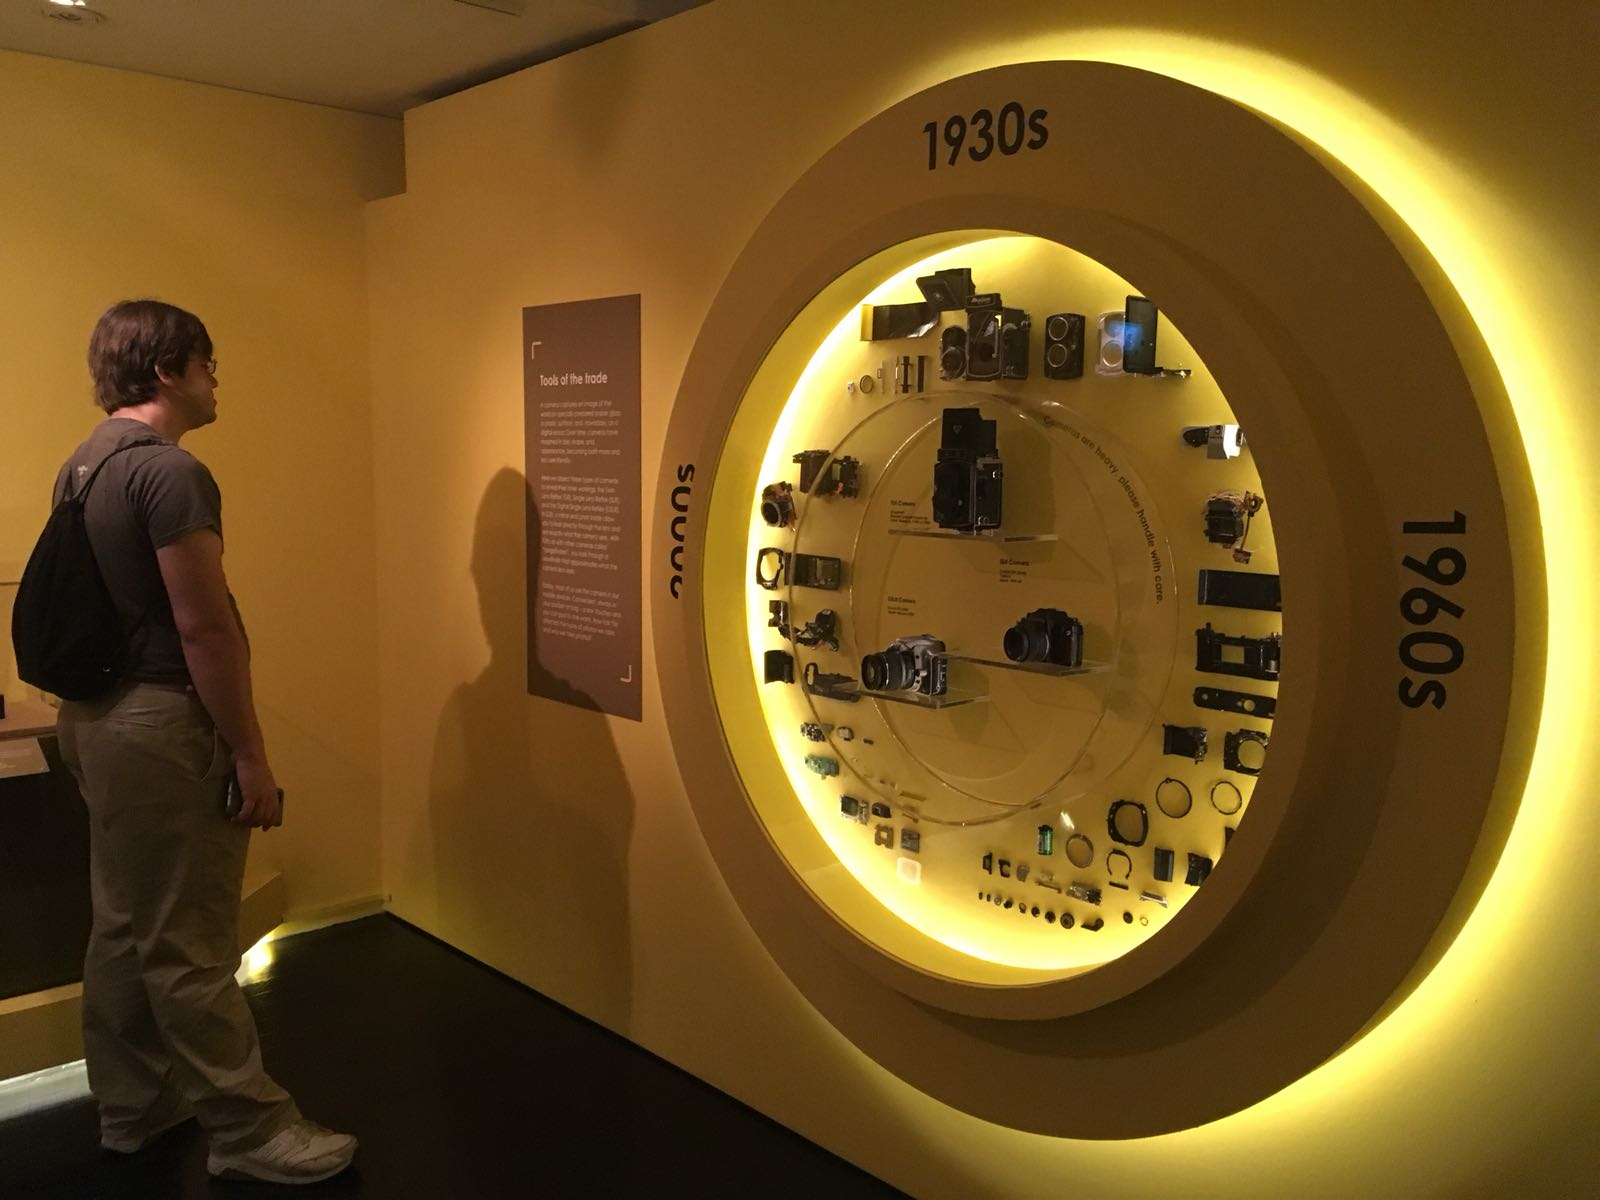 Learn how photography evolved over time at the Peranakan Museum